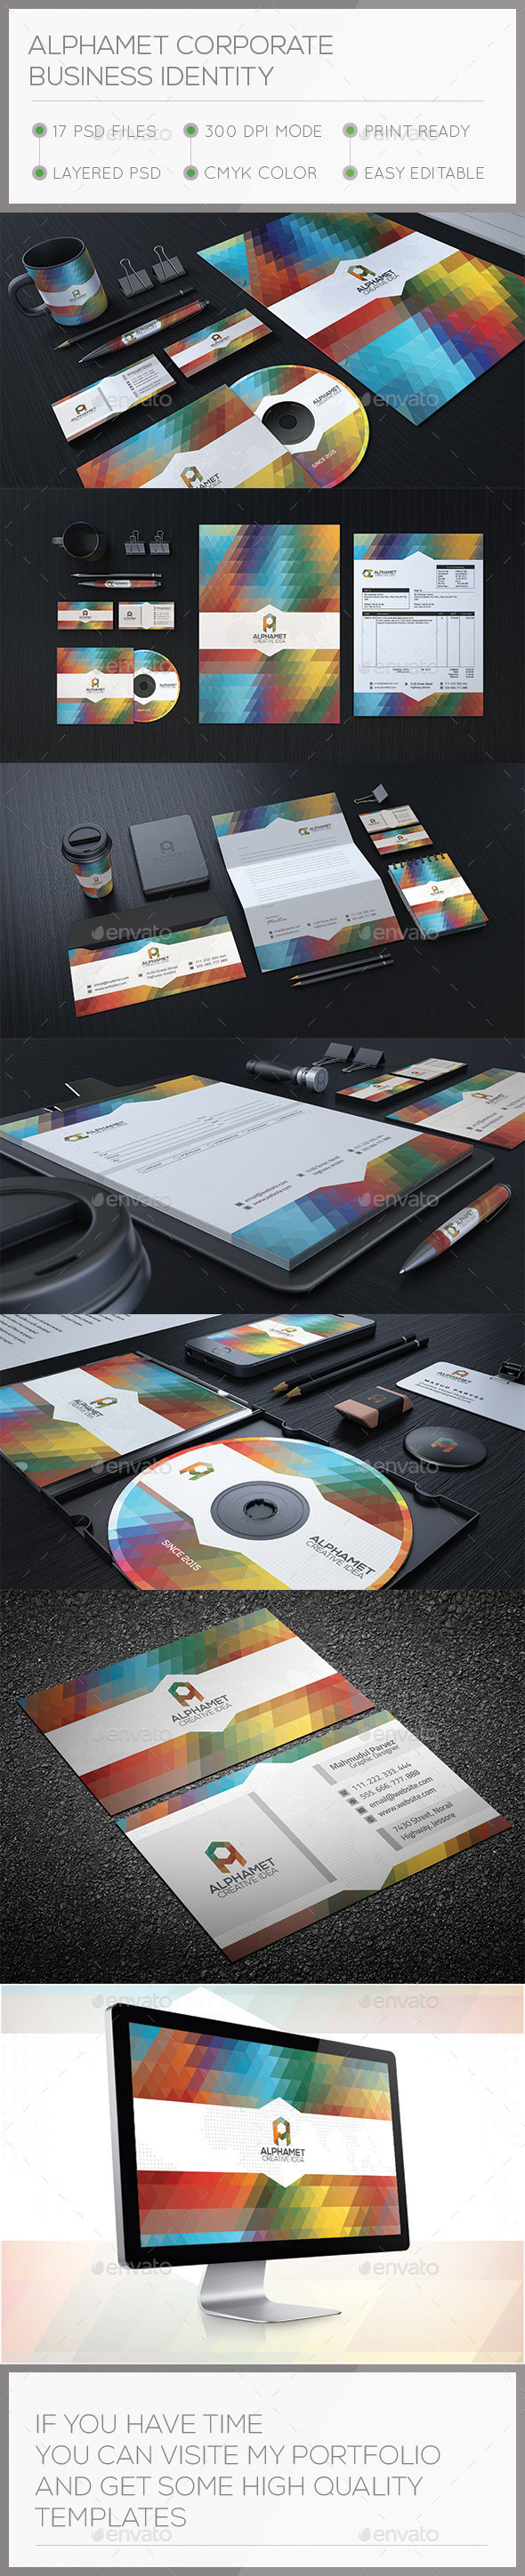 GraphicRiver Alphamet Corporate Stationary Identity 10427731